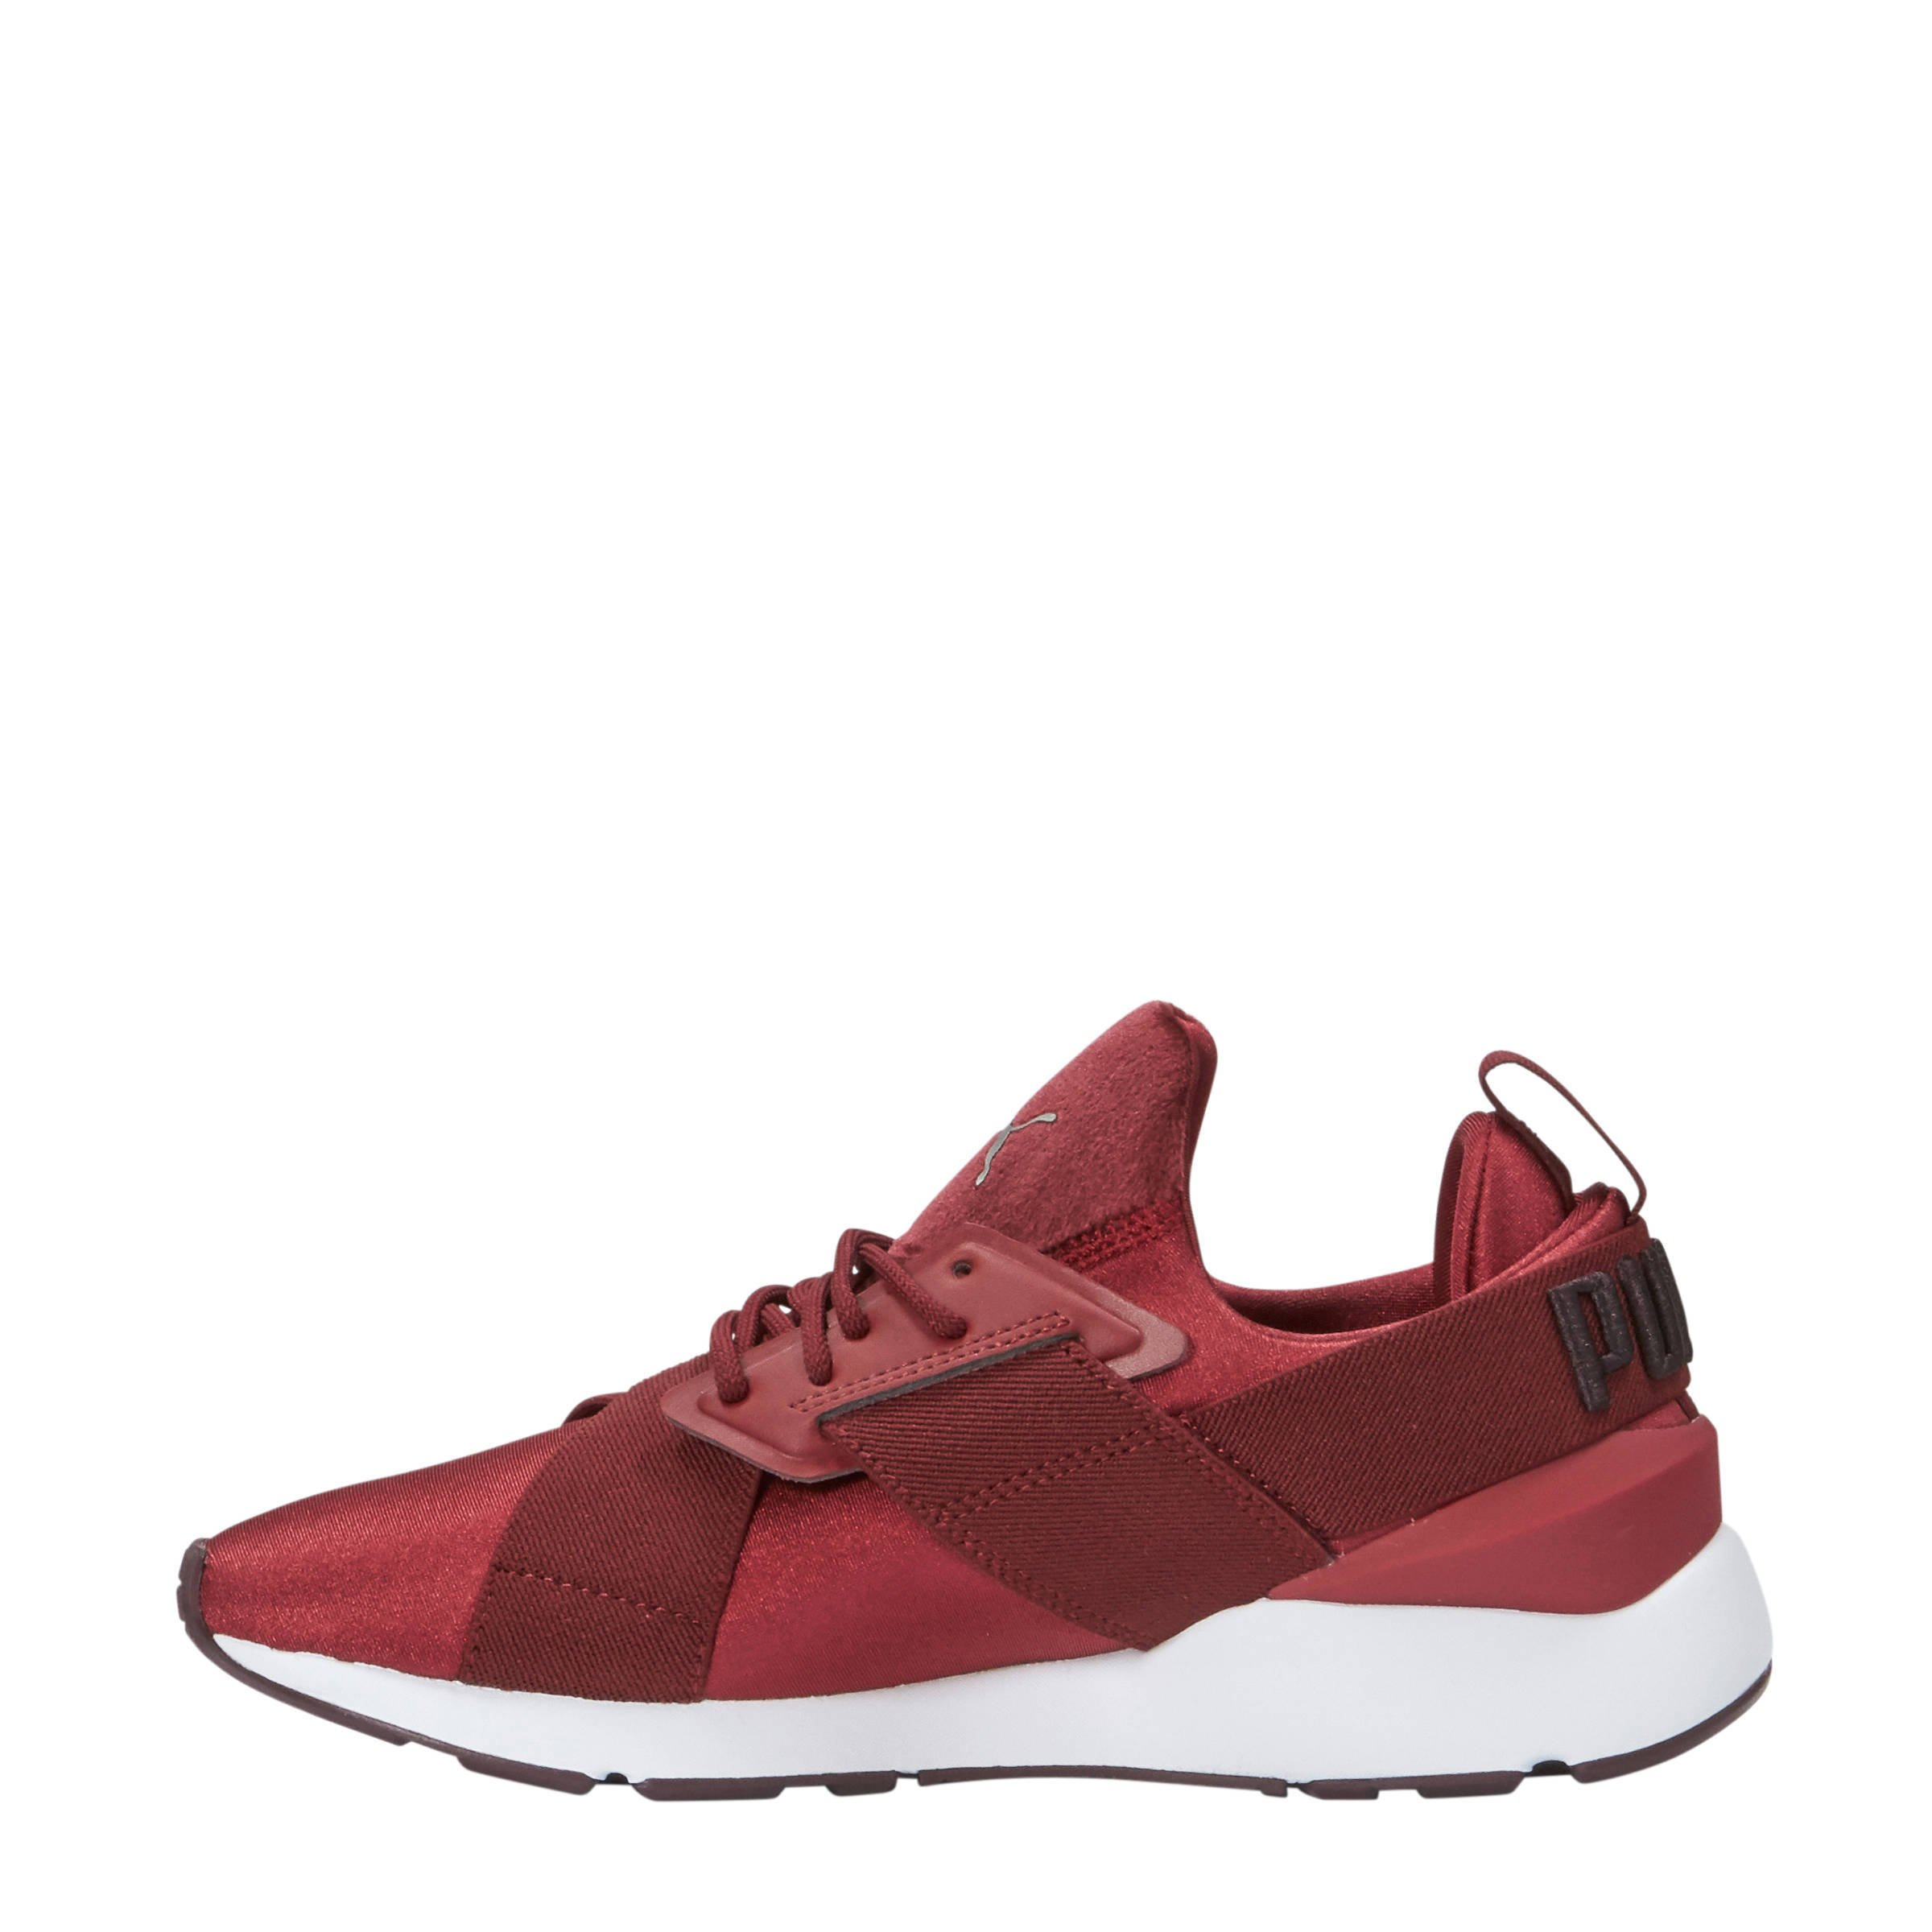 Muse Satin sneakers donkerrood